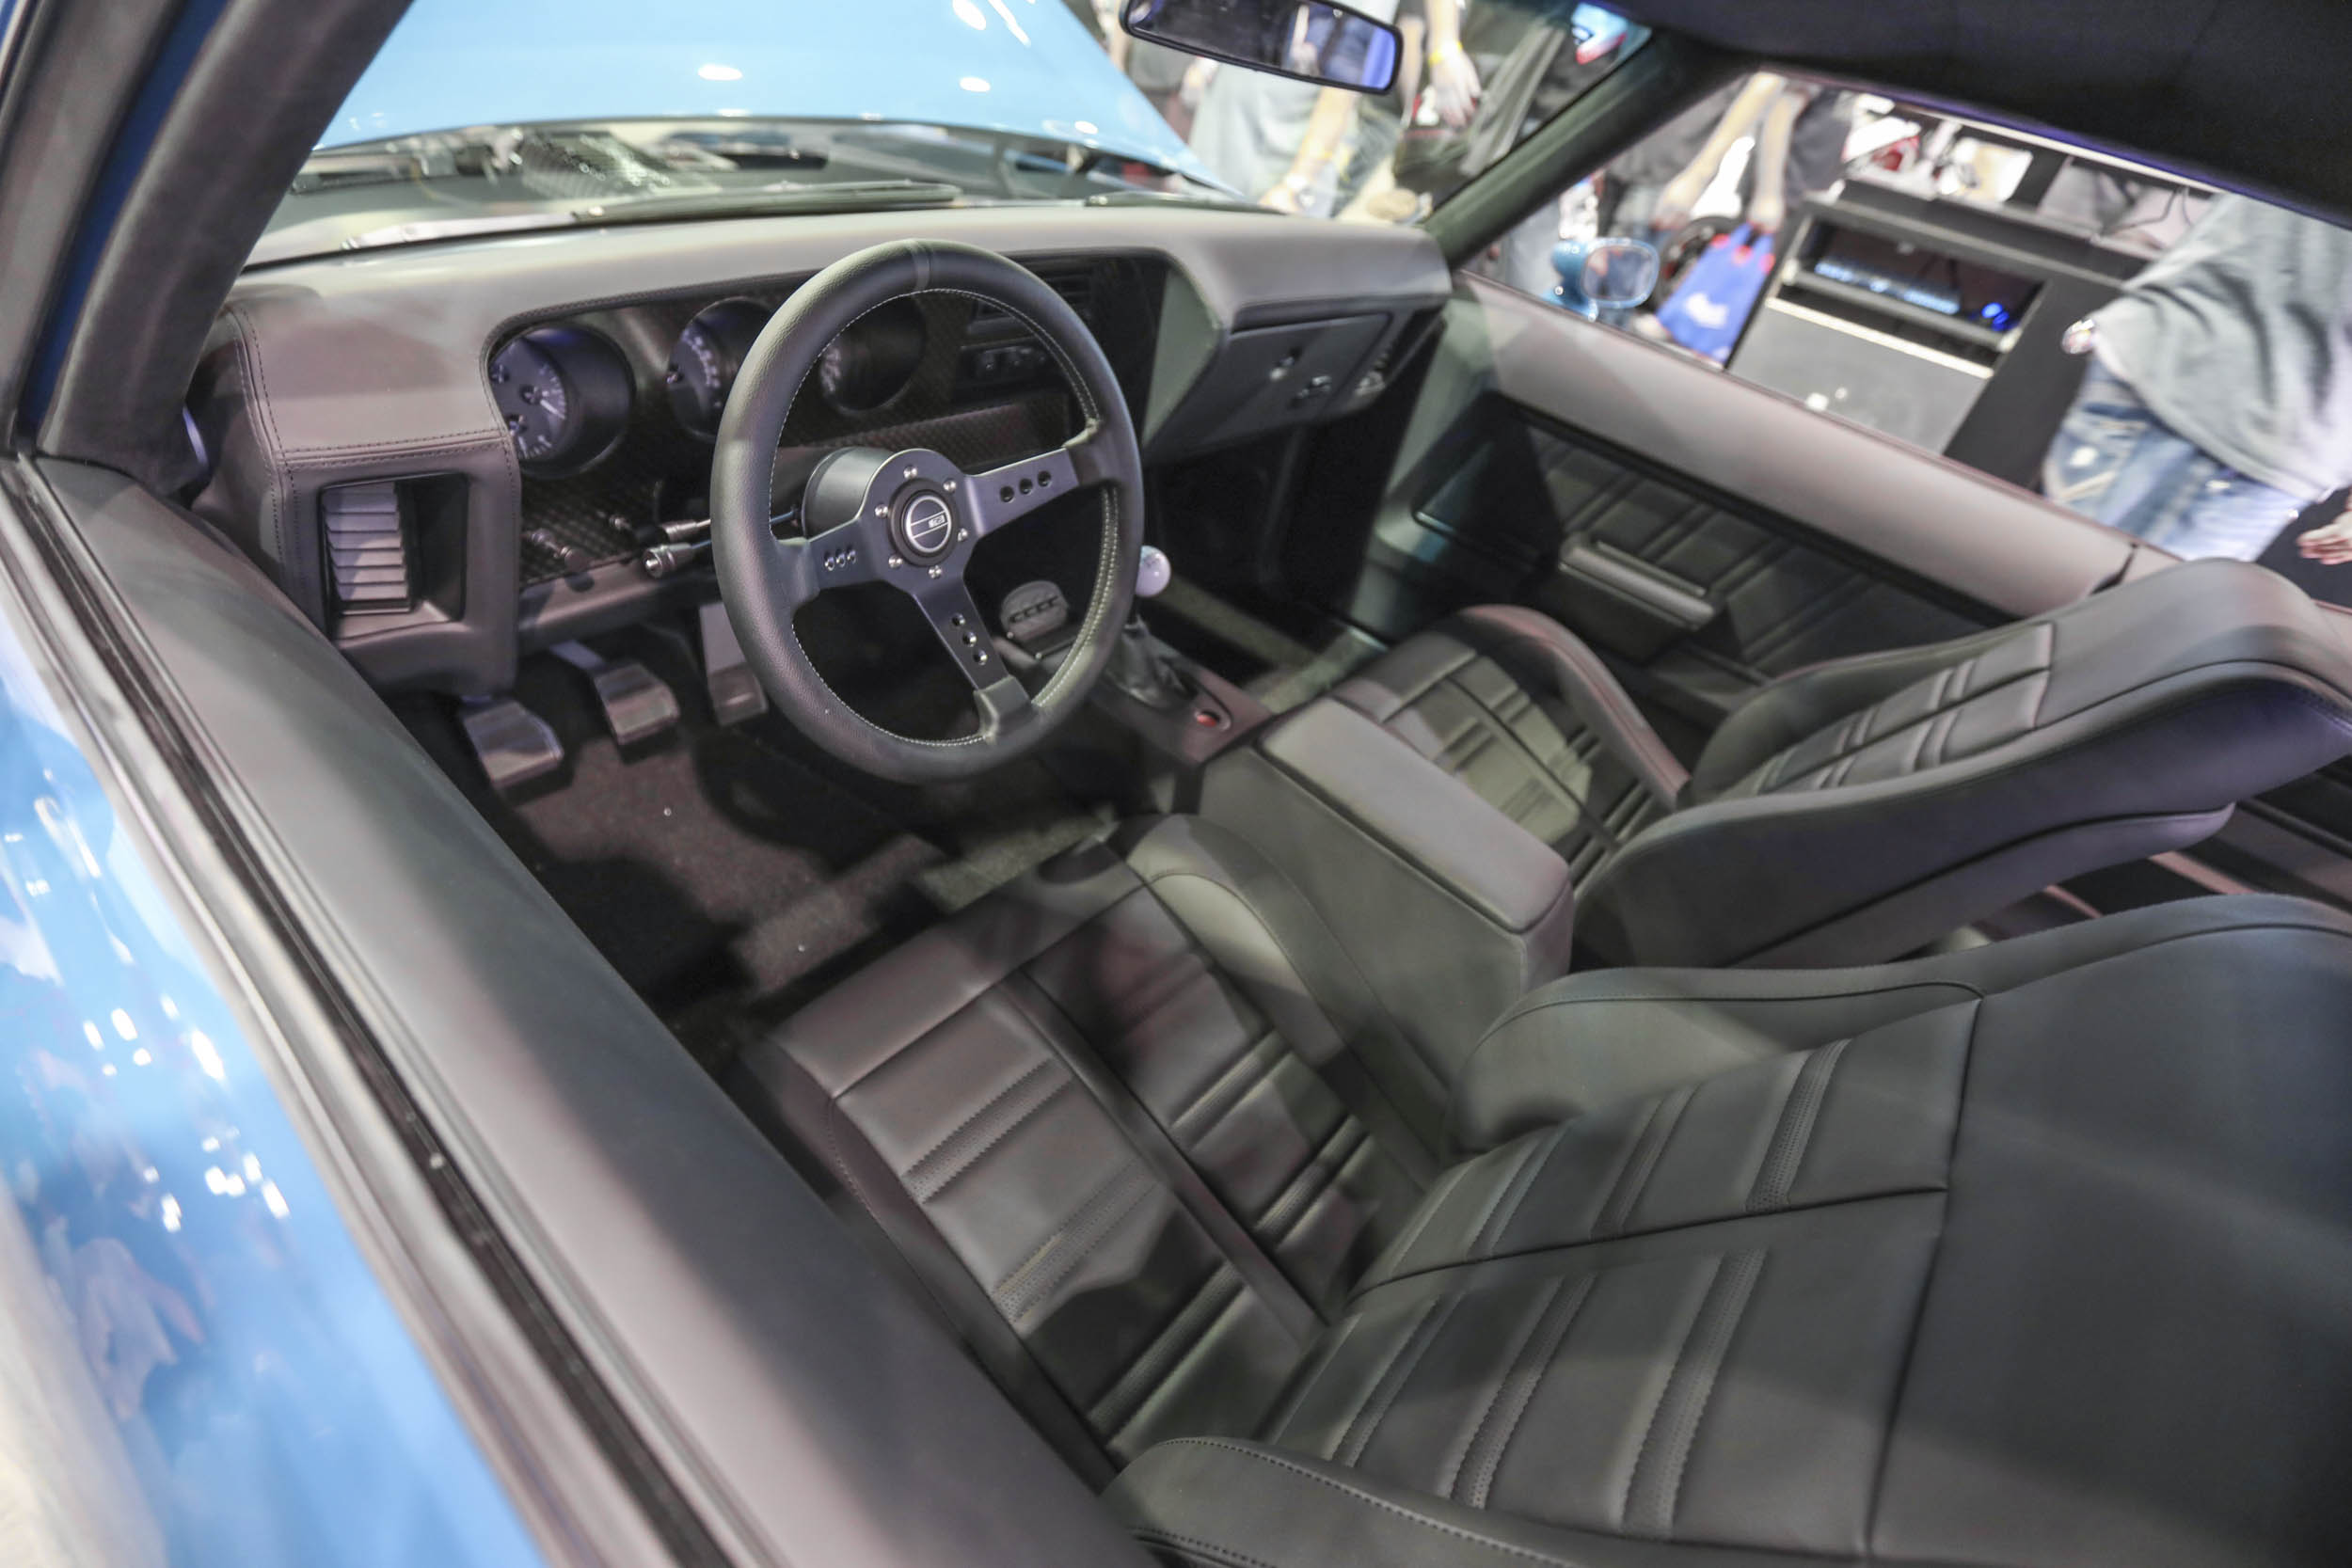 widebody Camaro from the Roadster Shop interior